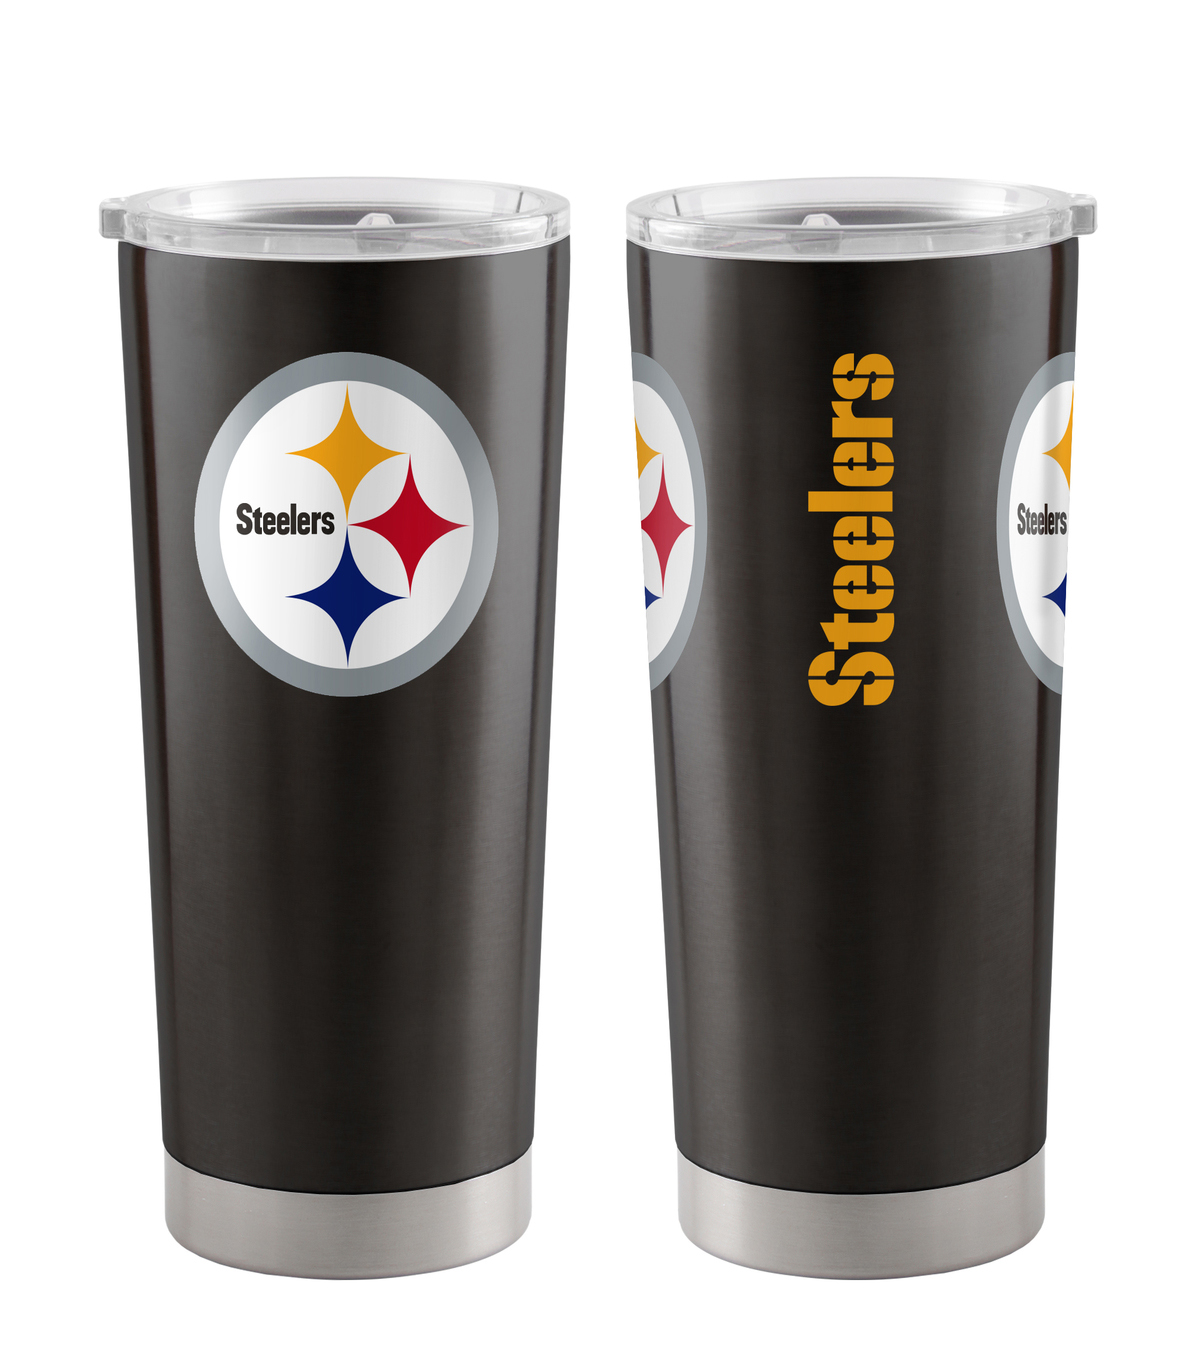 Pittsburgh Steelers 20 oz Insulated Stainless Steel Tumbler